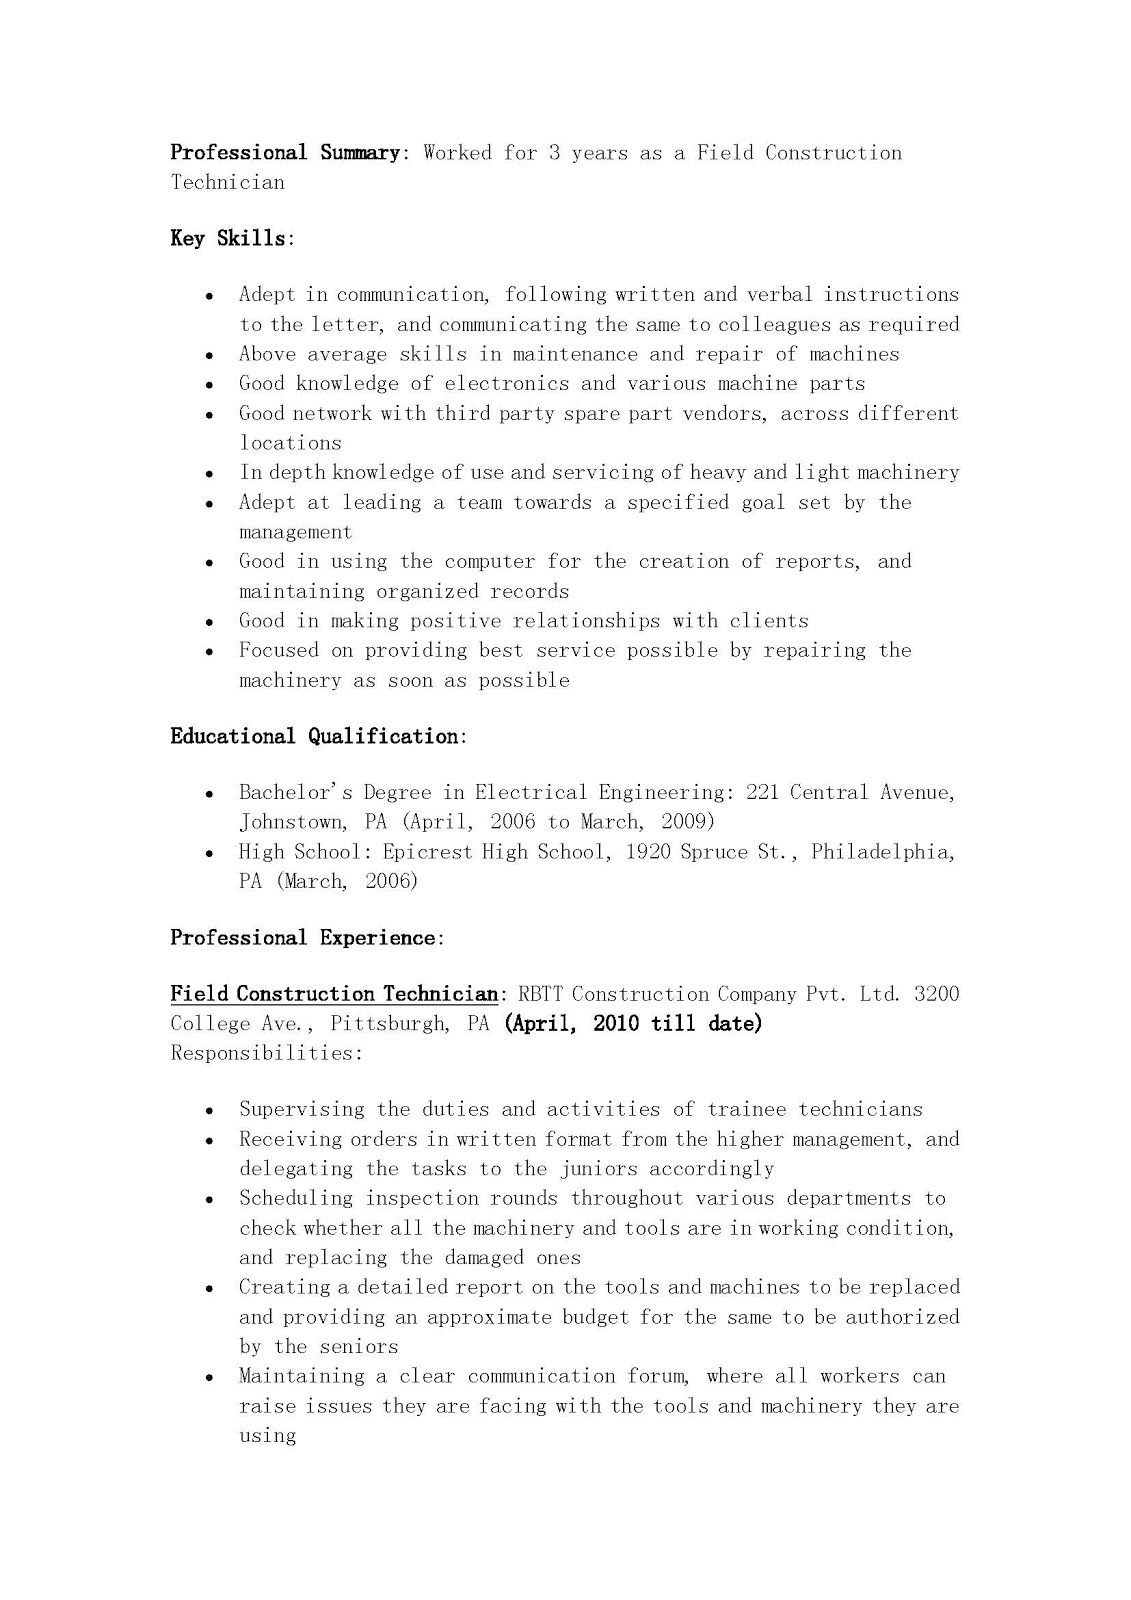 sample construction resume 0813